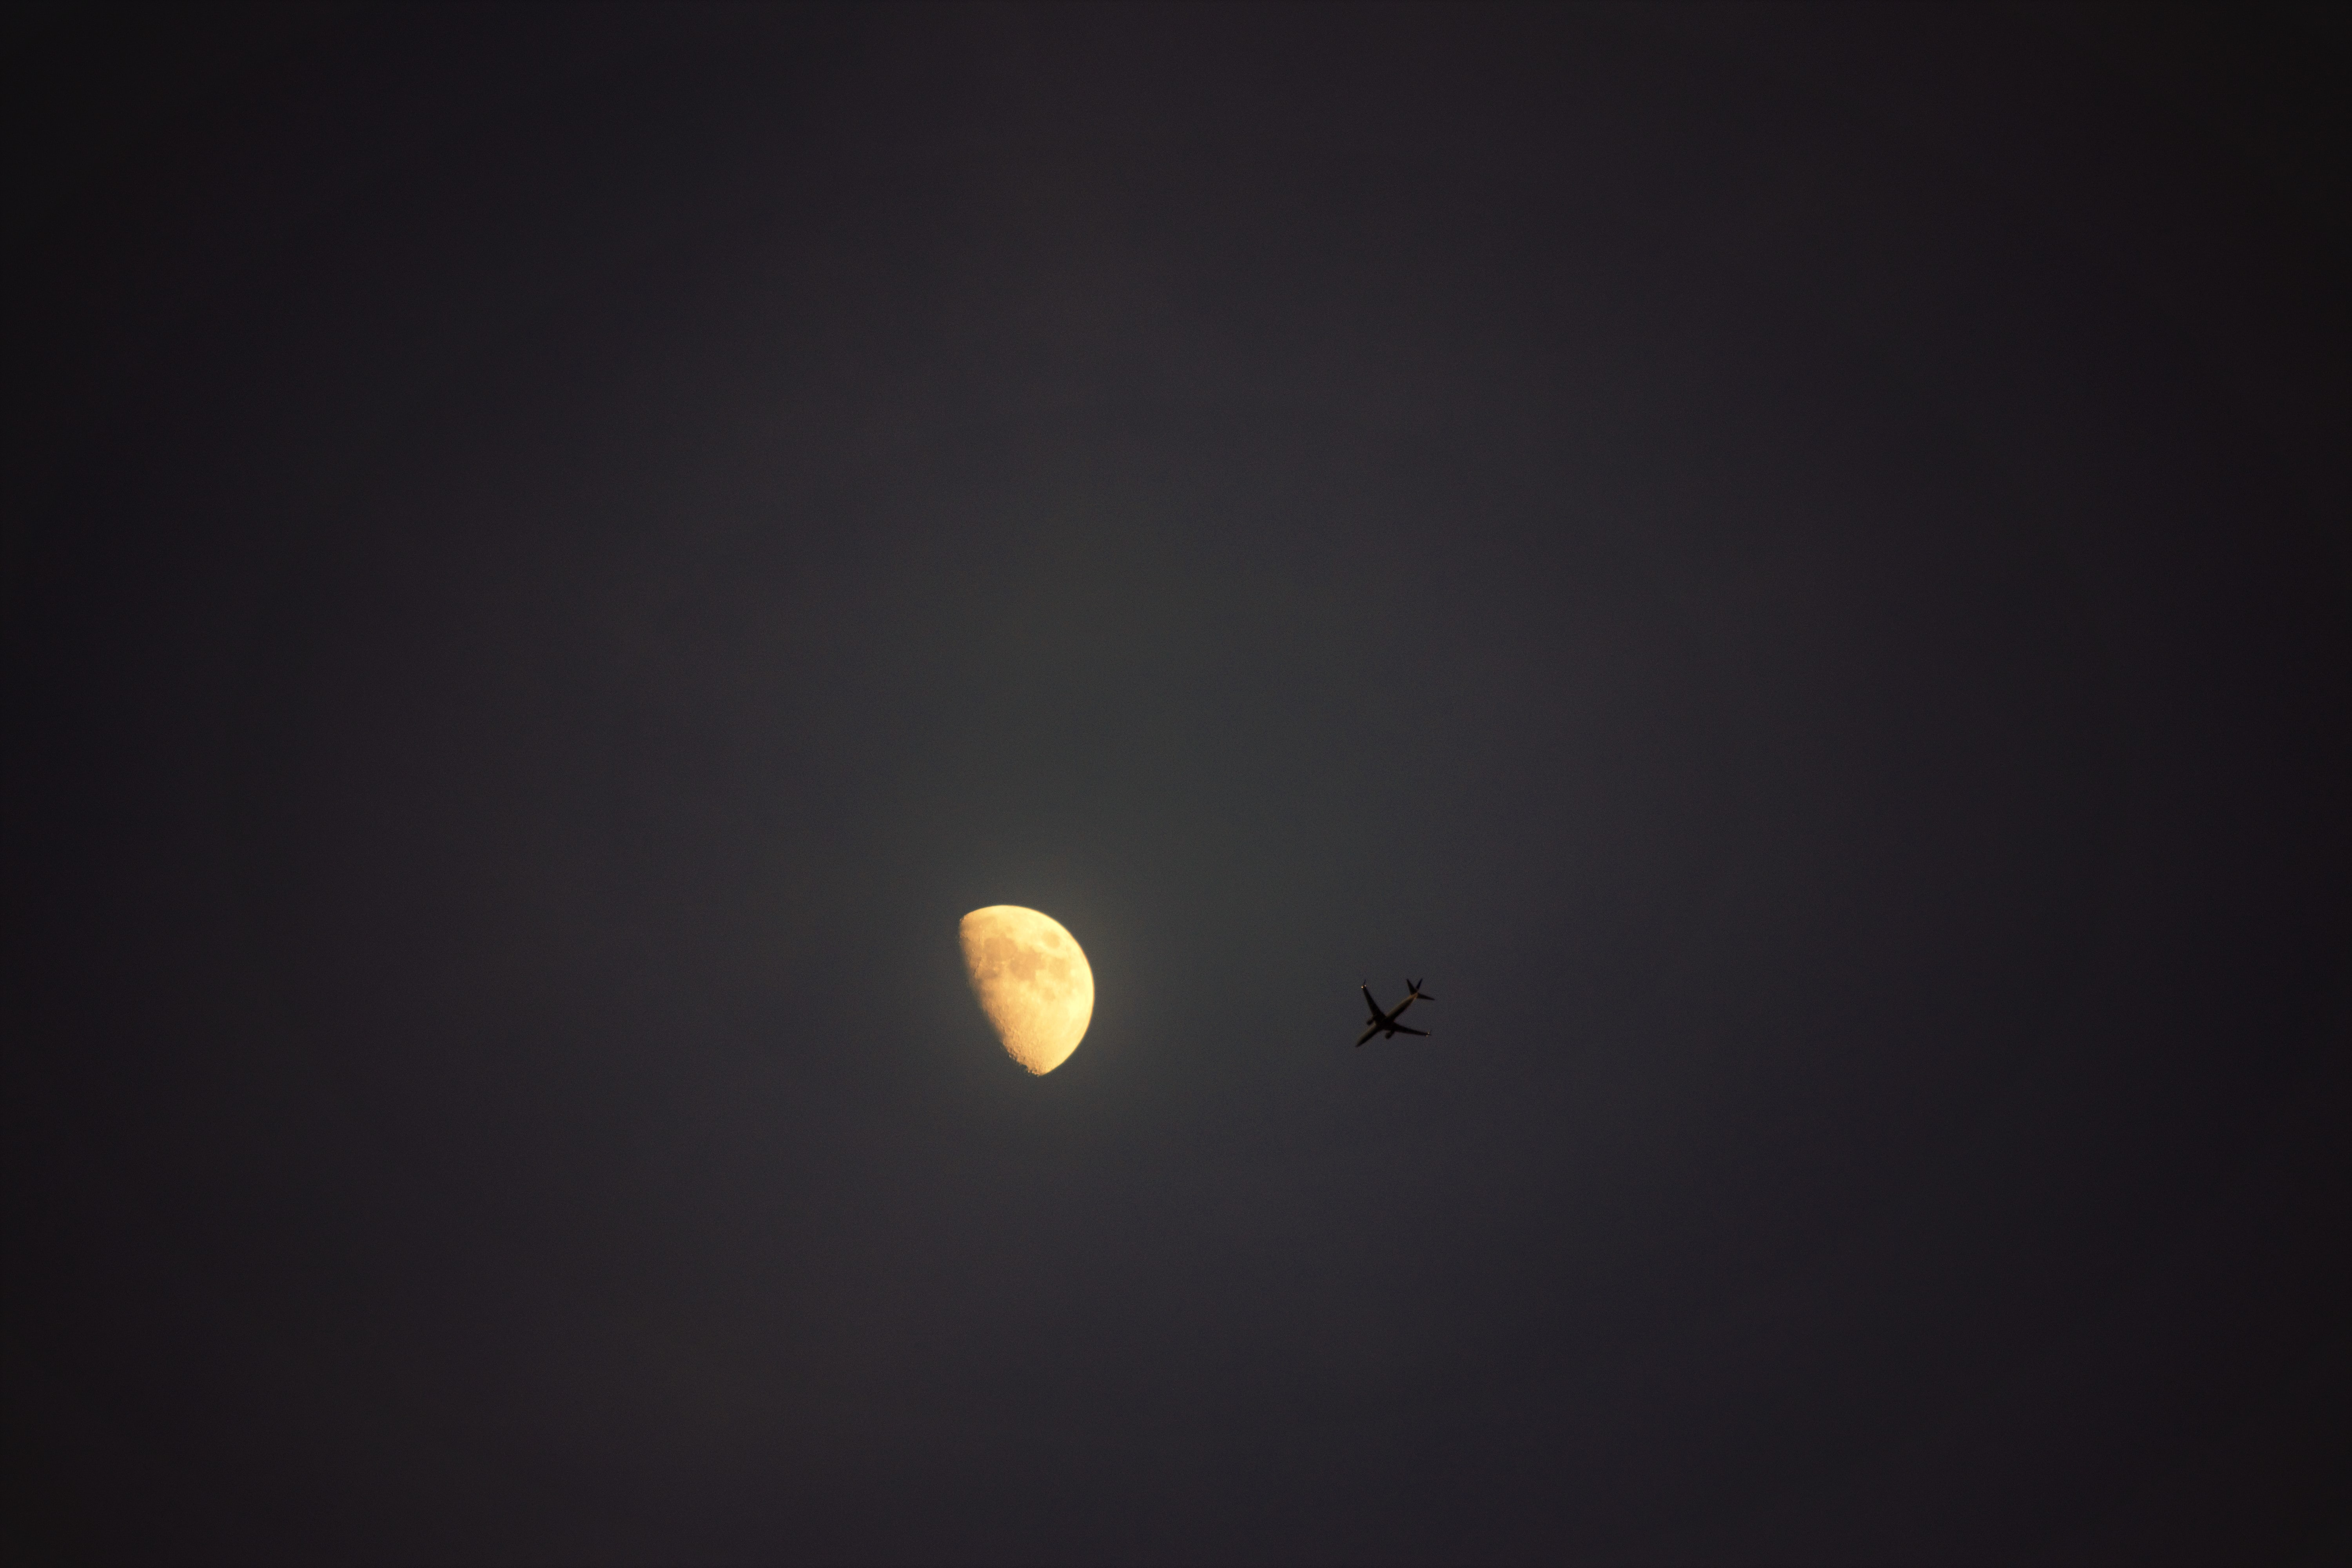 The night sky with a half moon and a plane flying by